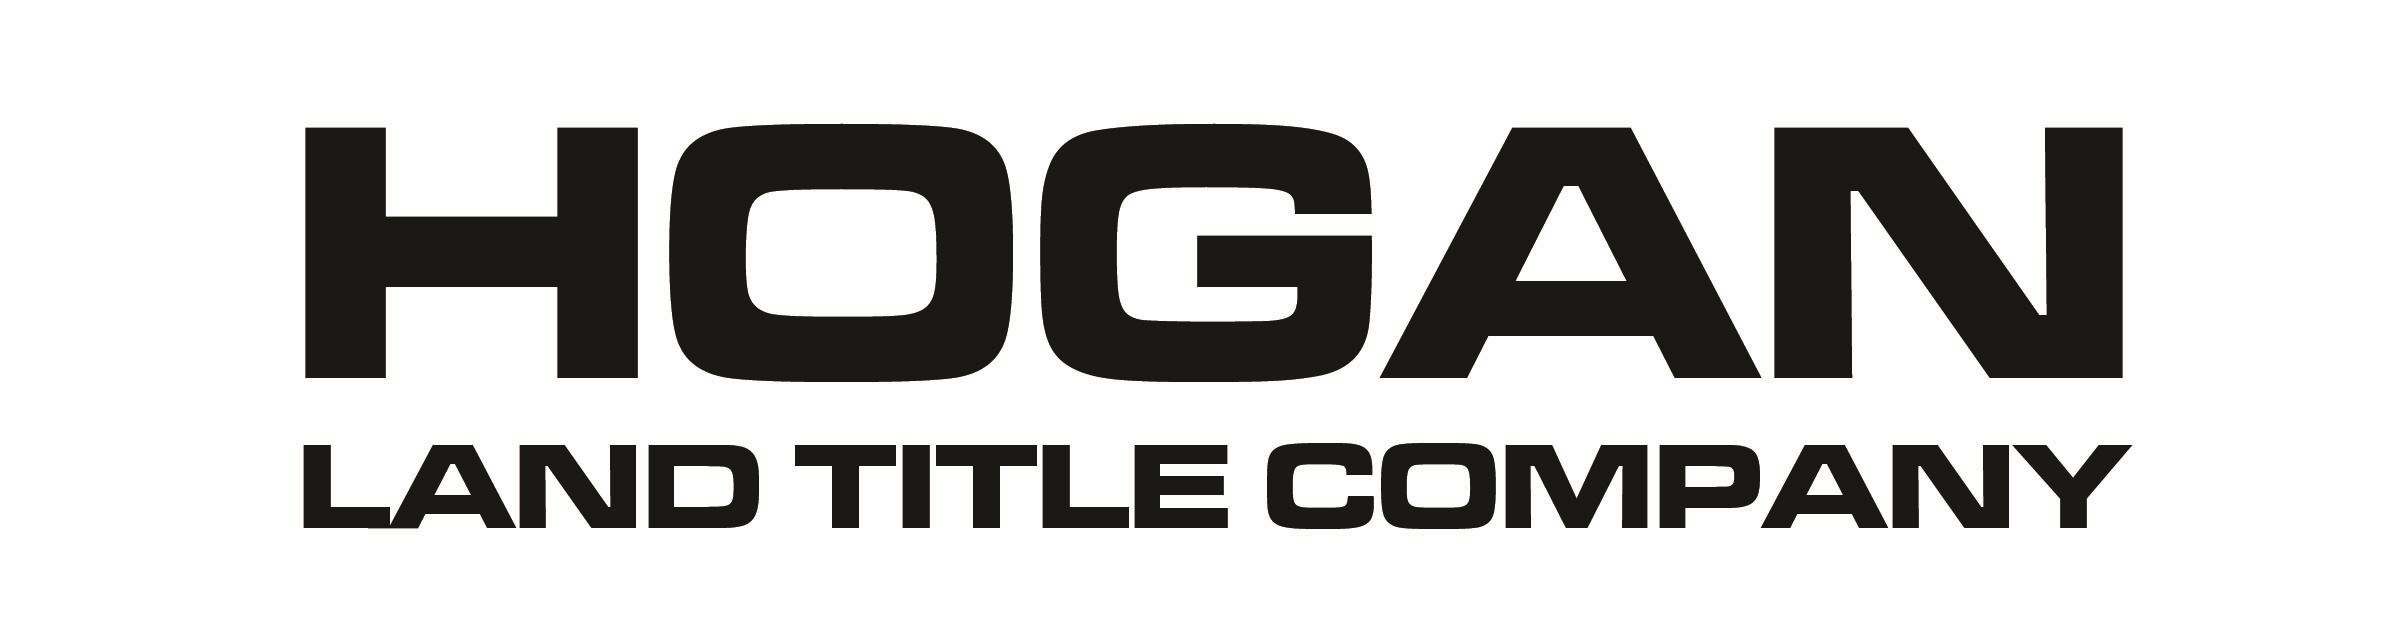 HOGAN LAND TITLE COMPANY black